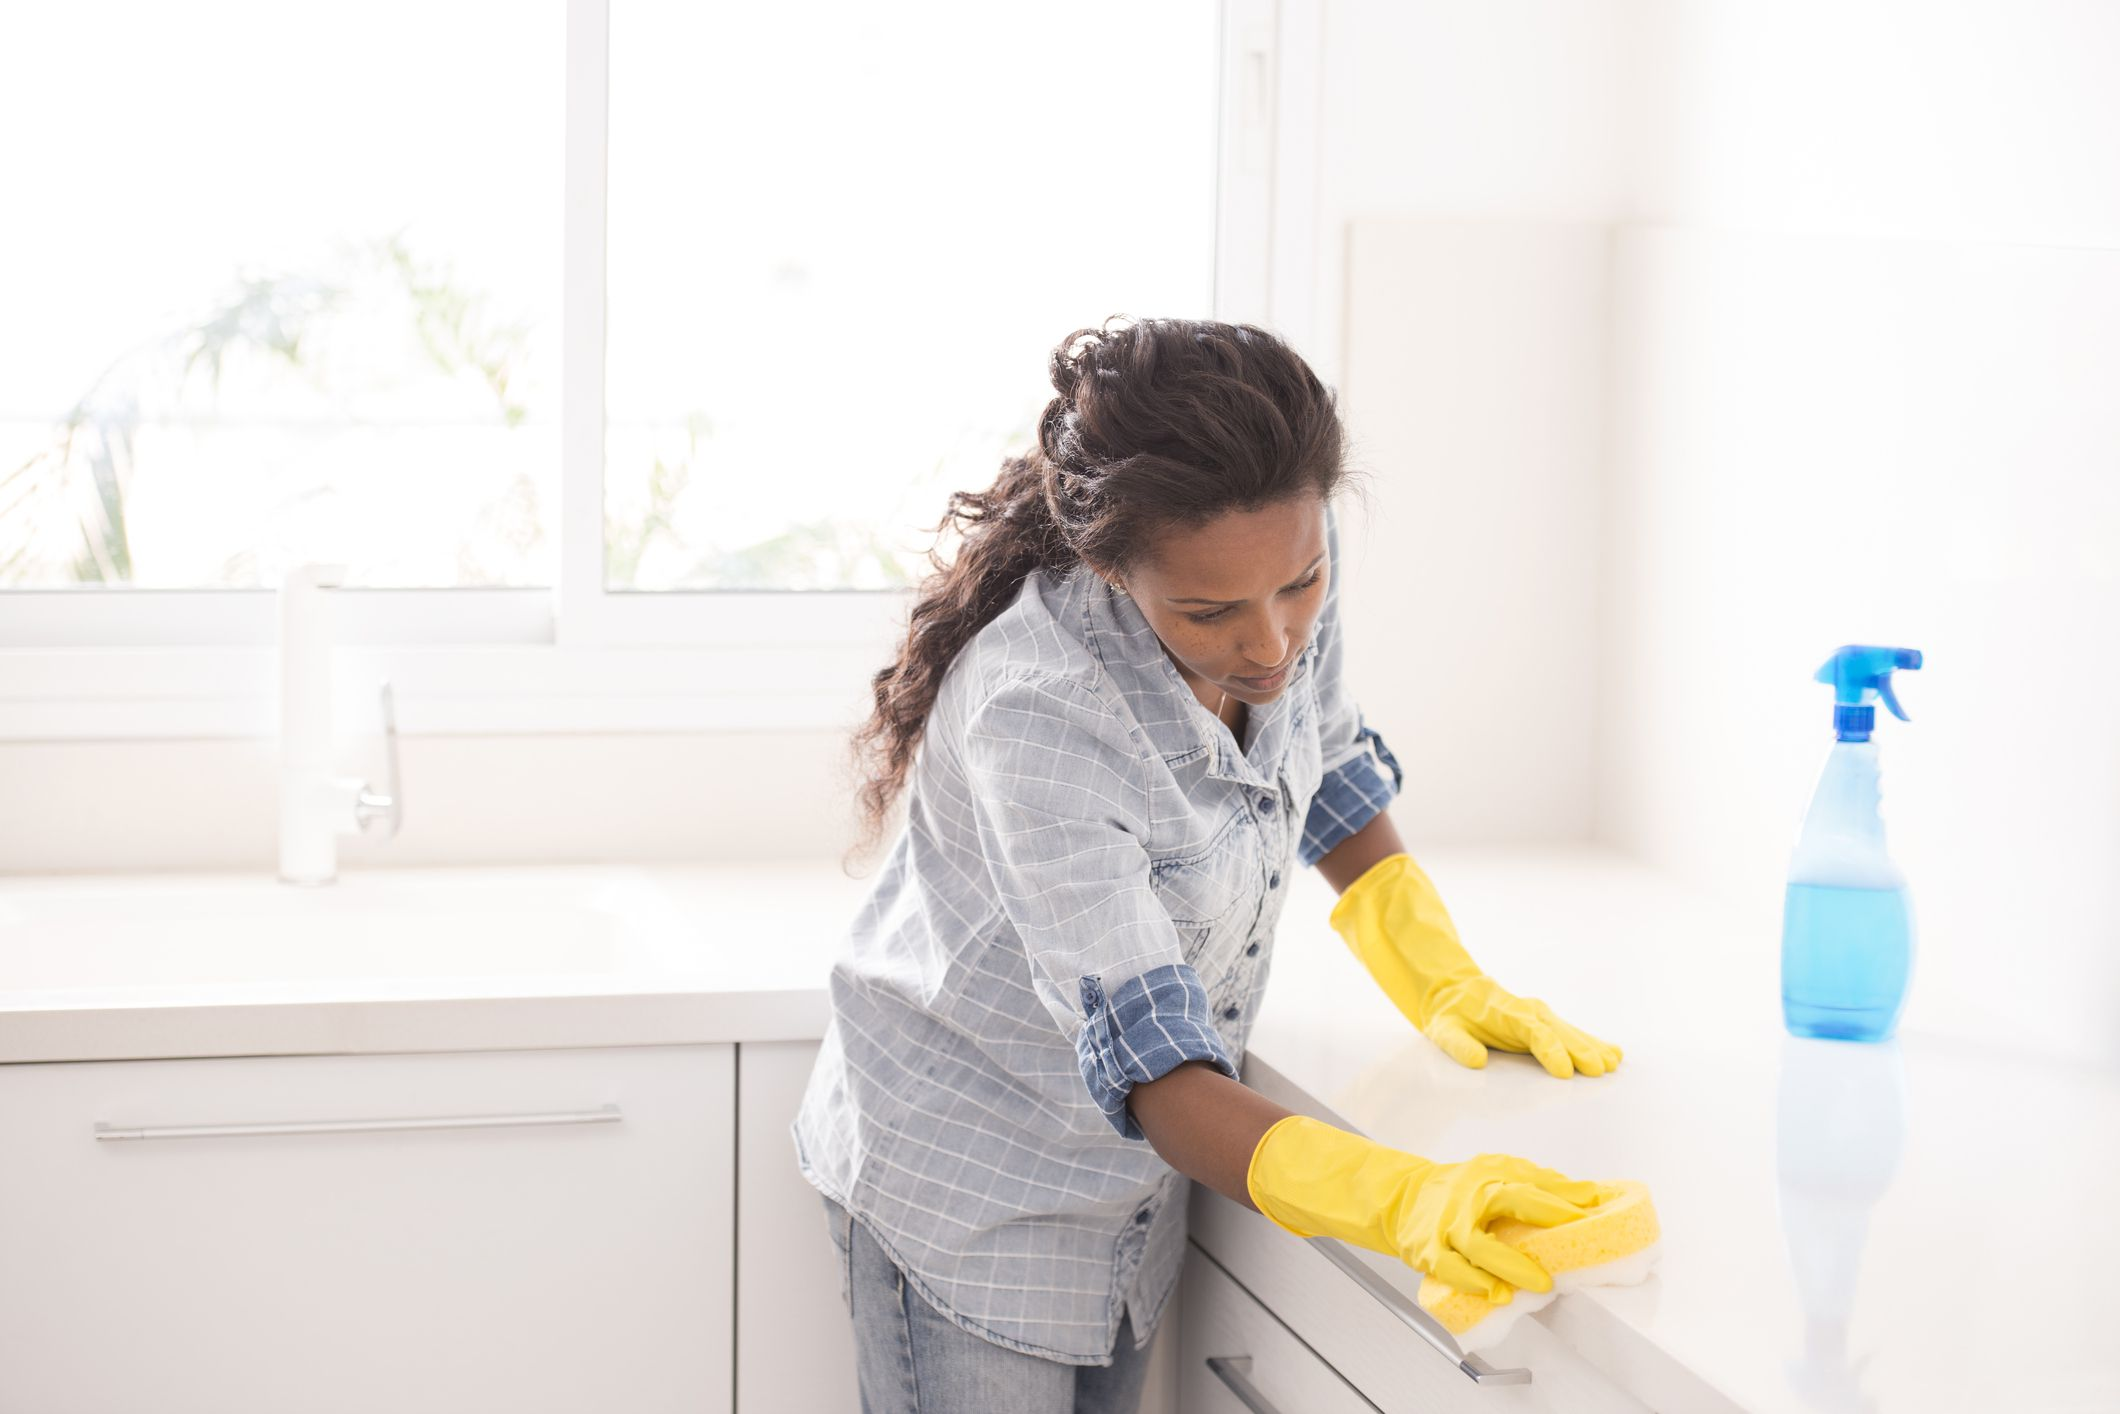 Woman-cleaning-kitchen-GettyImages-628306310-58aa25163df78c345bce8aa1.jpg (2120×1414)